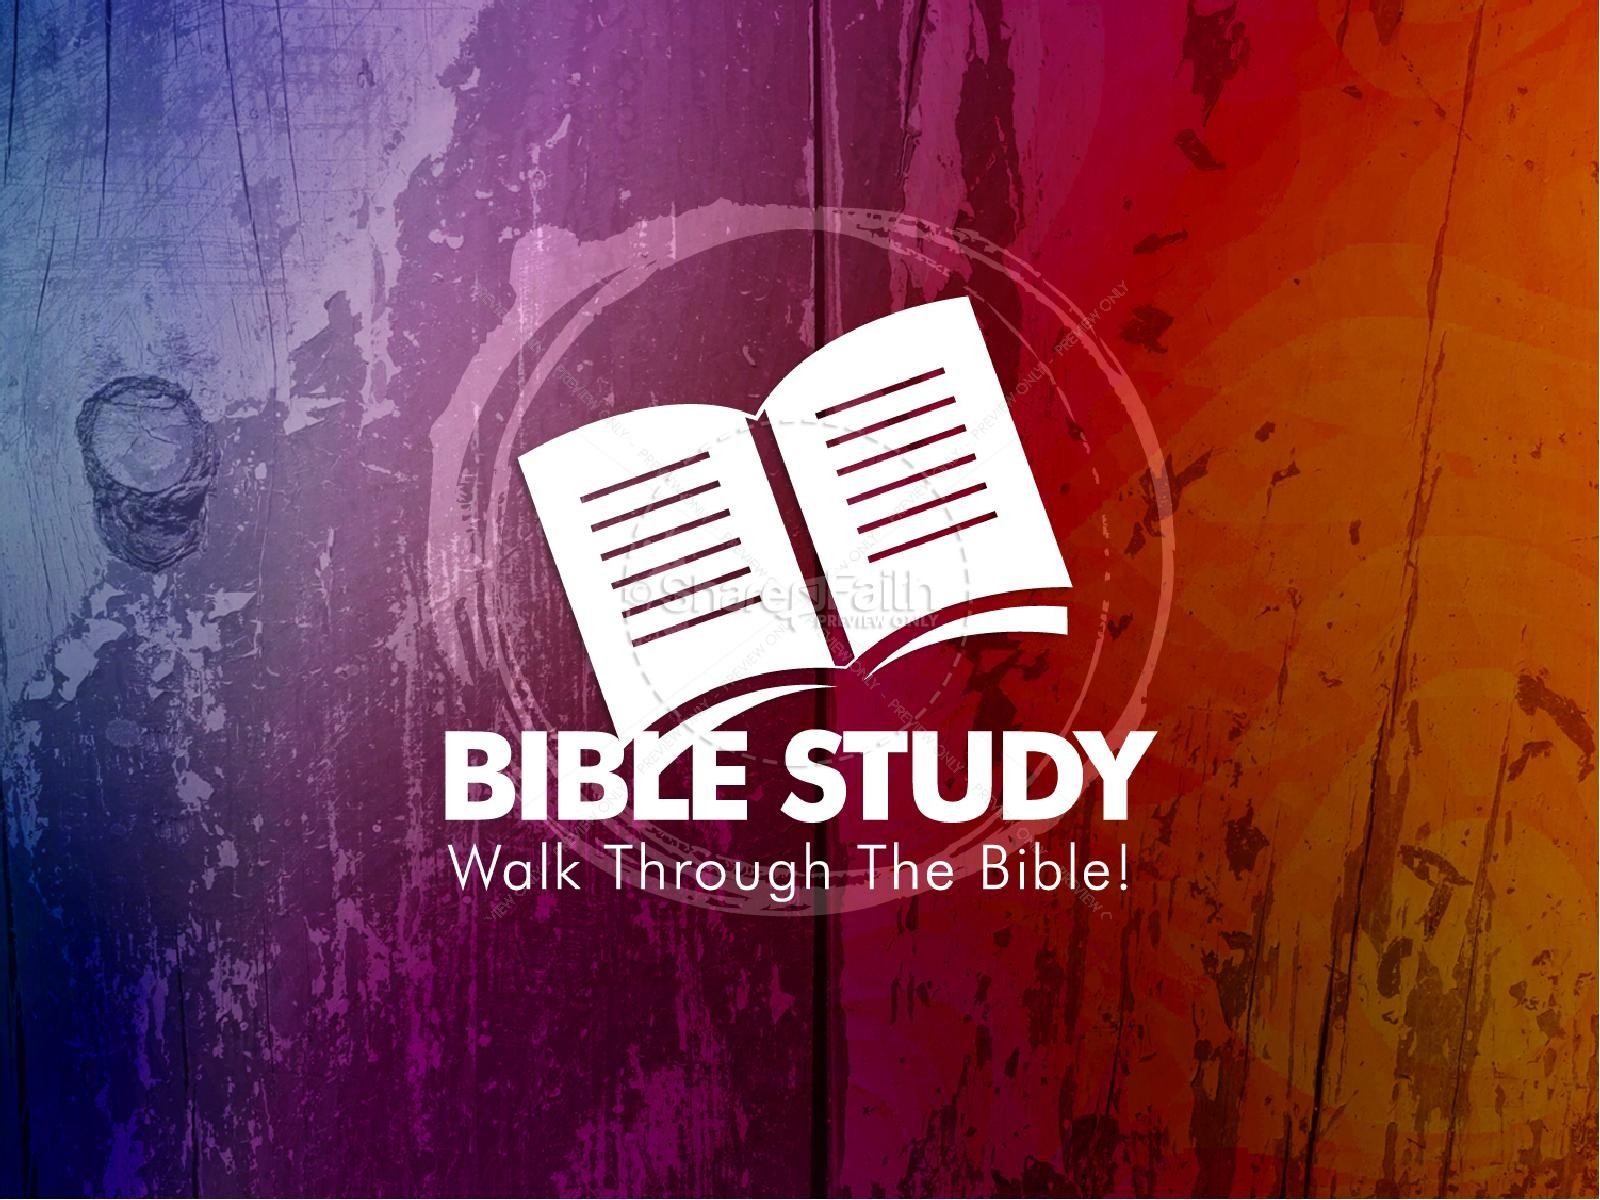 Bible Study PowerPoint Template | slide 1